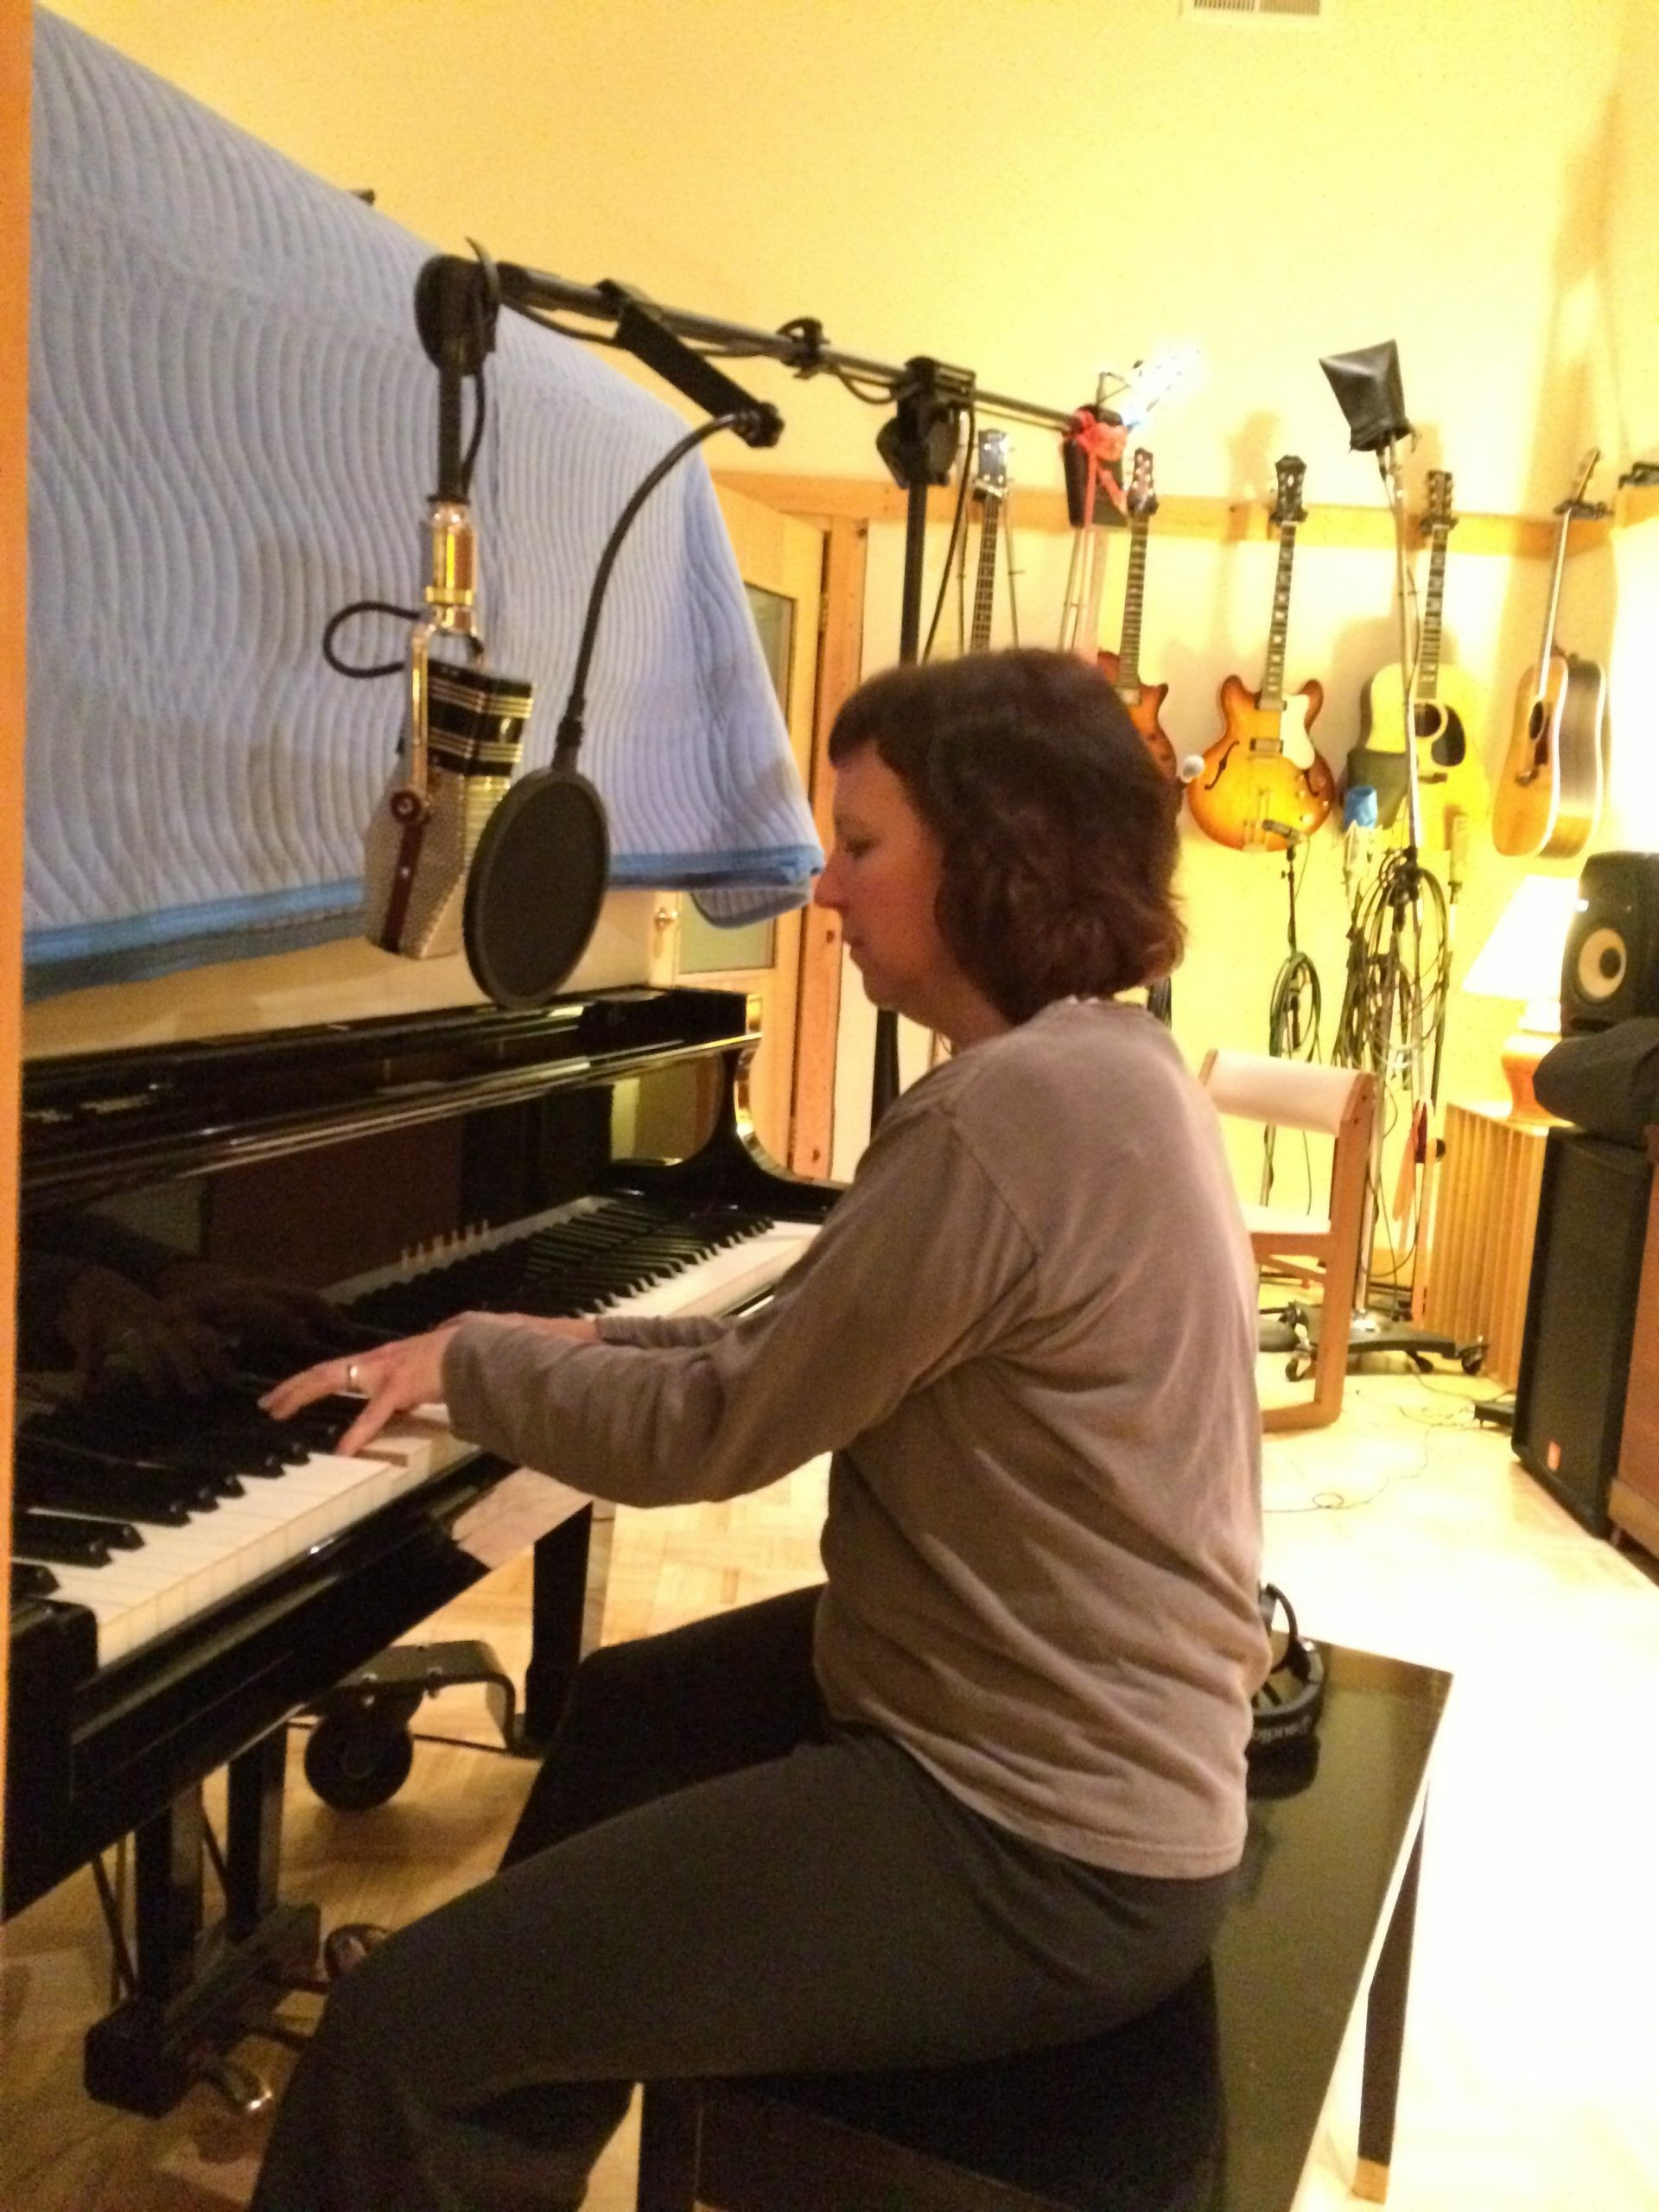 A musician plays a piano in a music studio